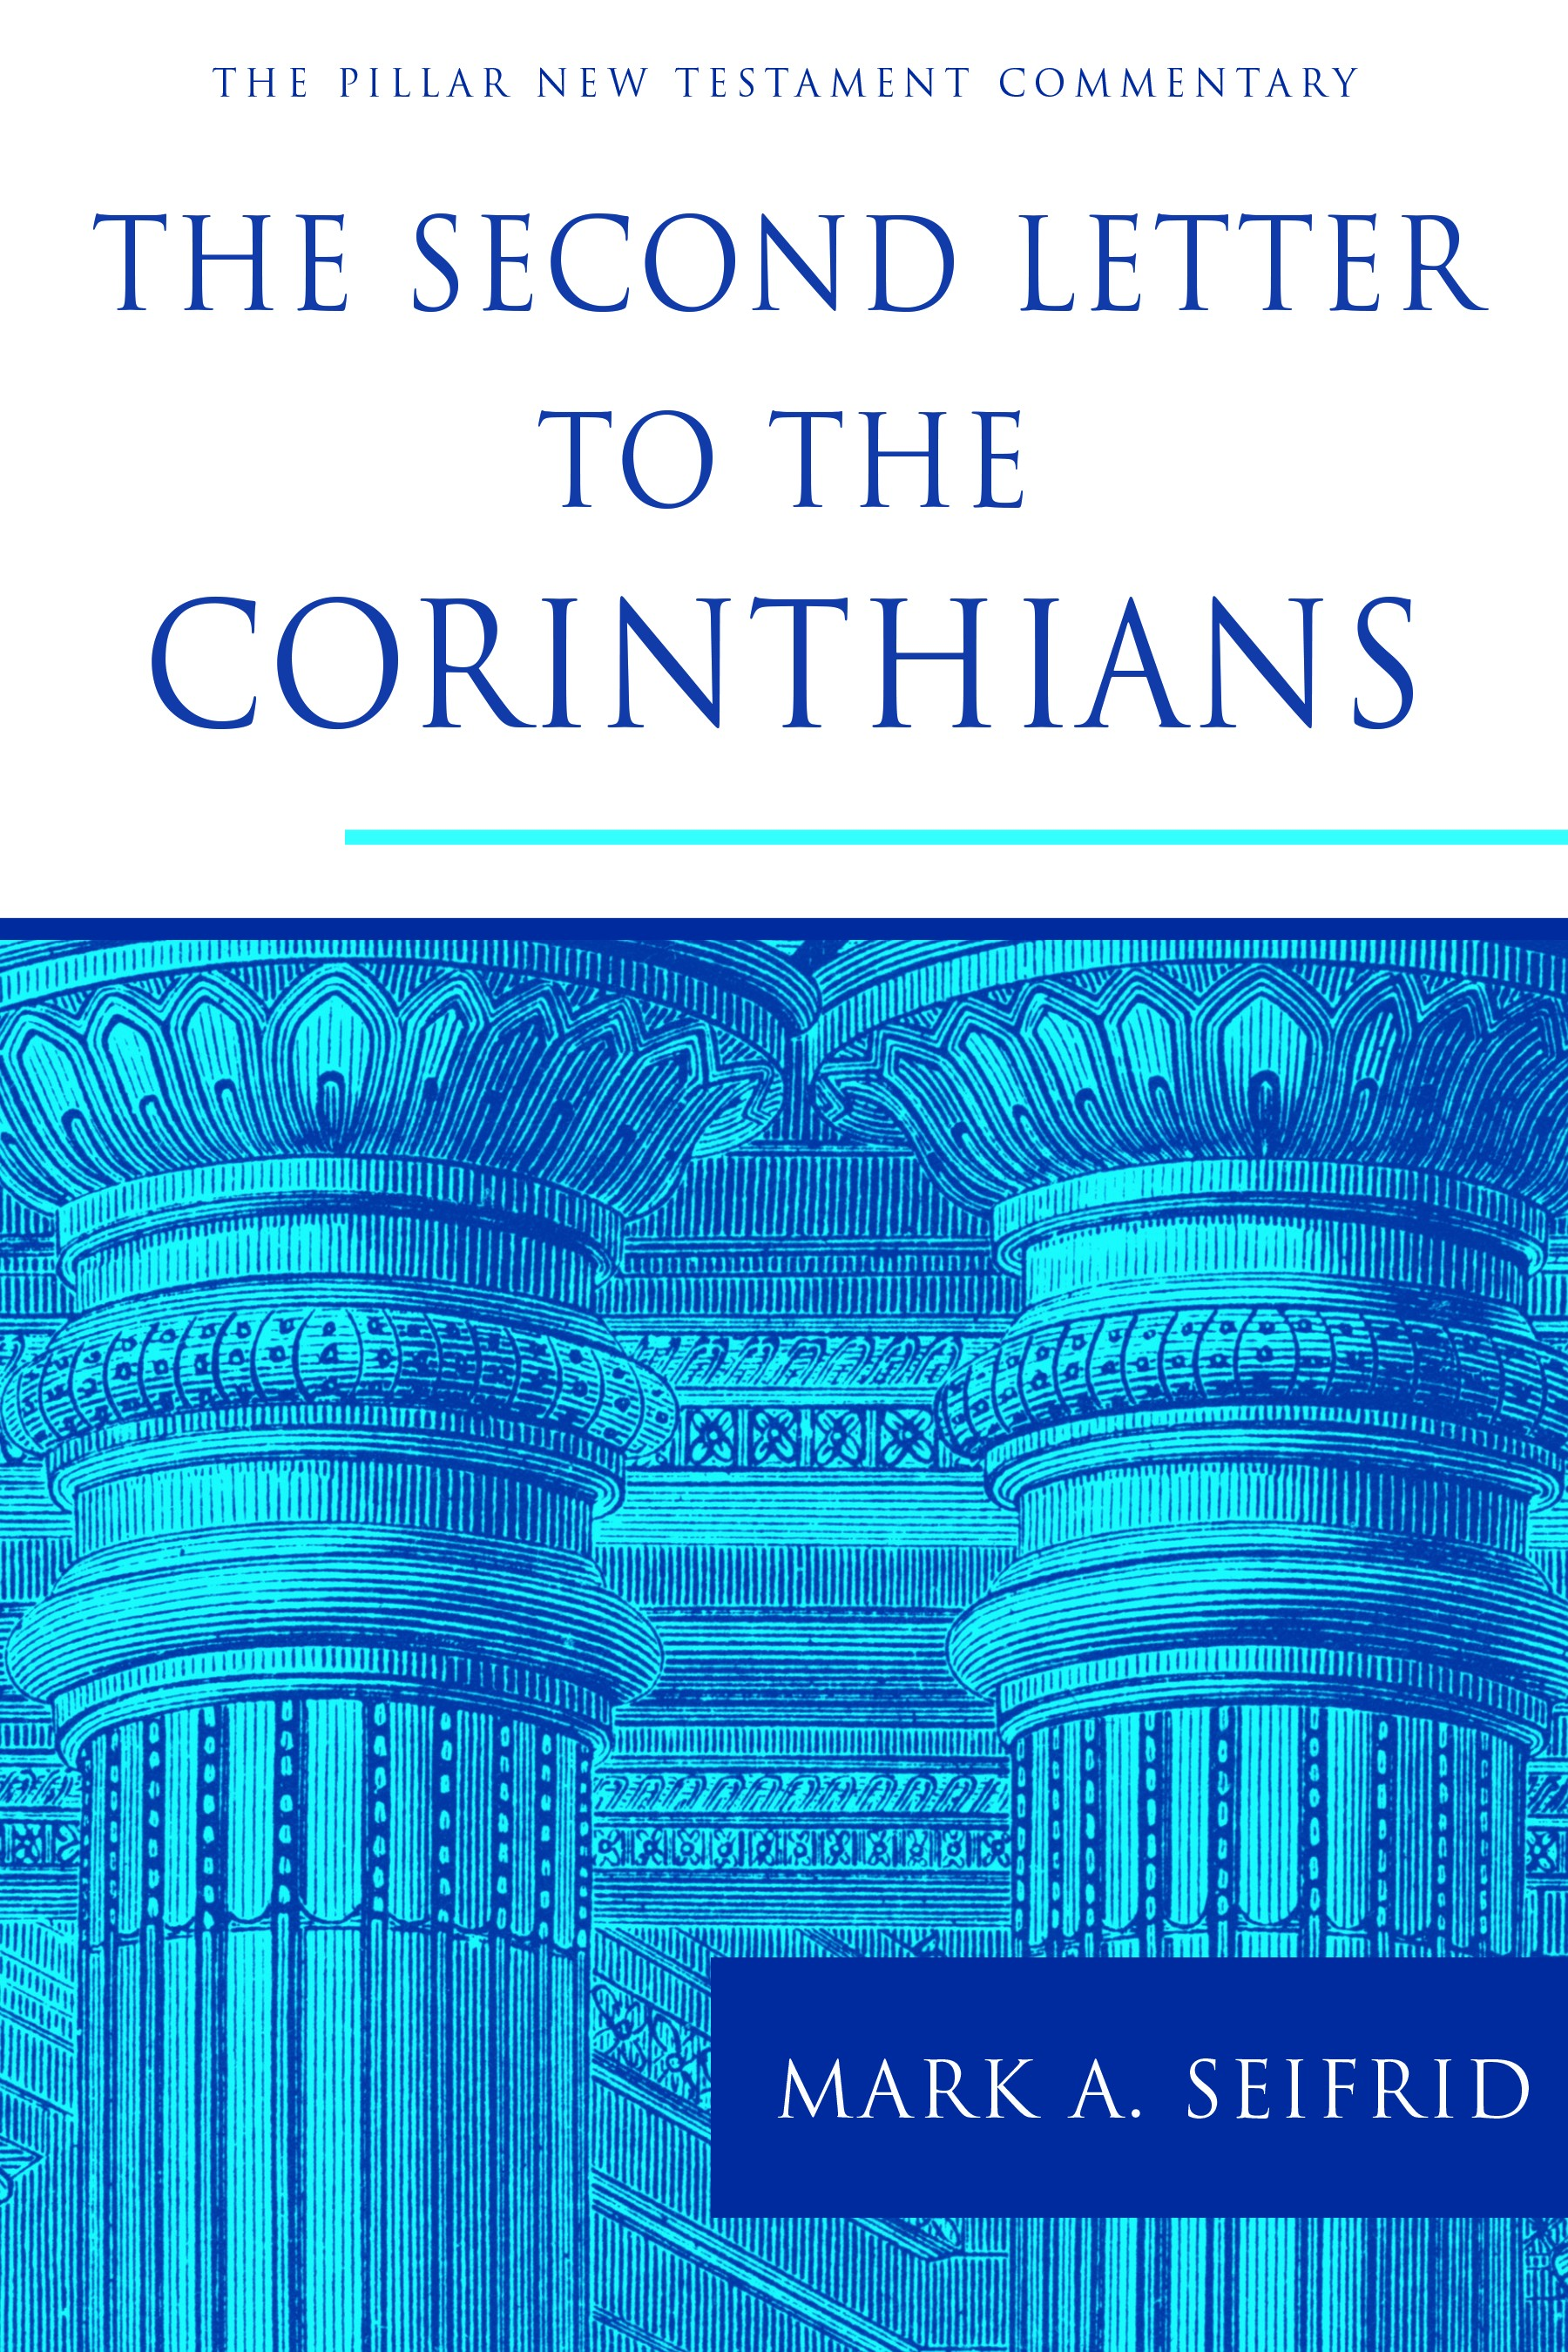 Second Letter to the Corinthians